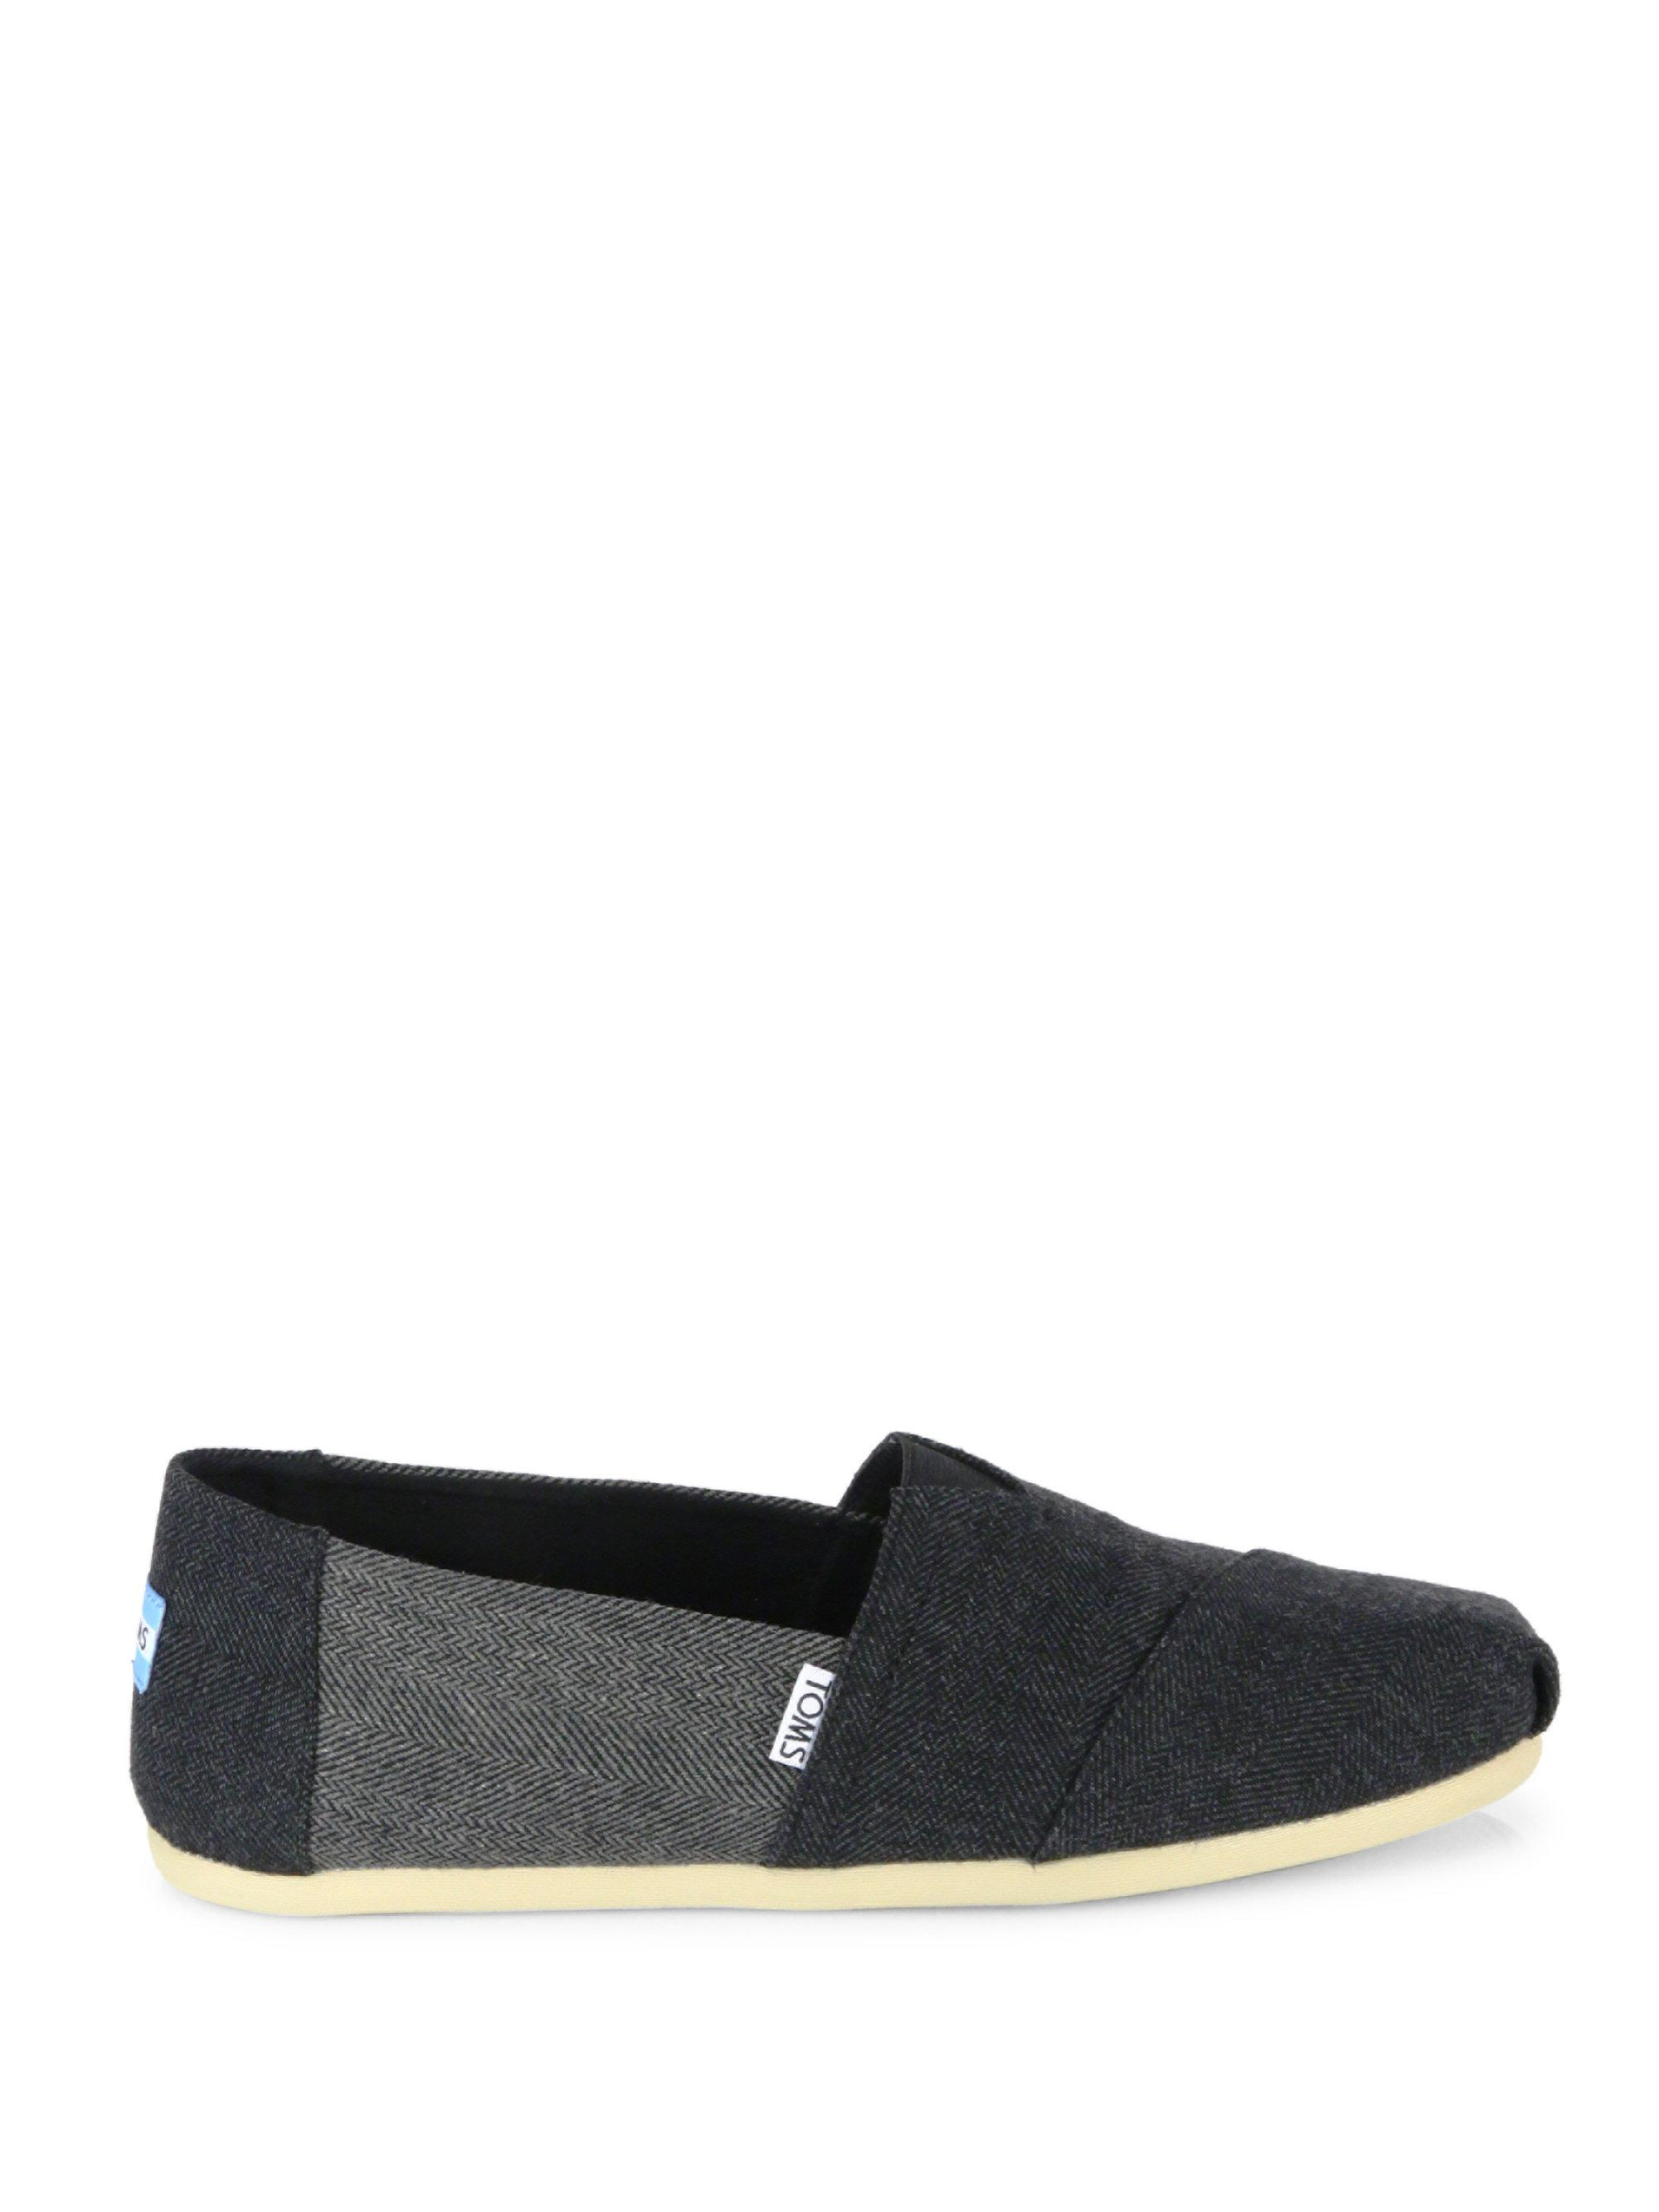 TOMS Alpargartas Deconstructed Wool Slip-On Sneakers rzIrpeY